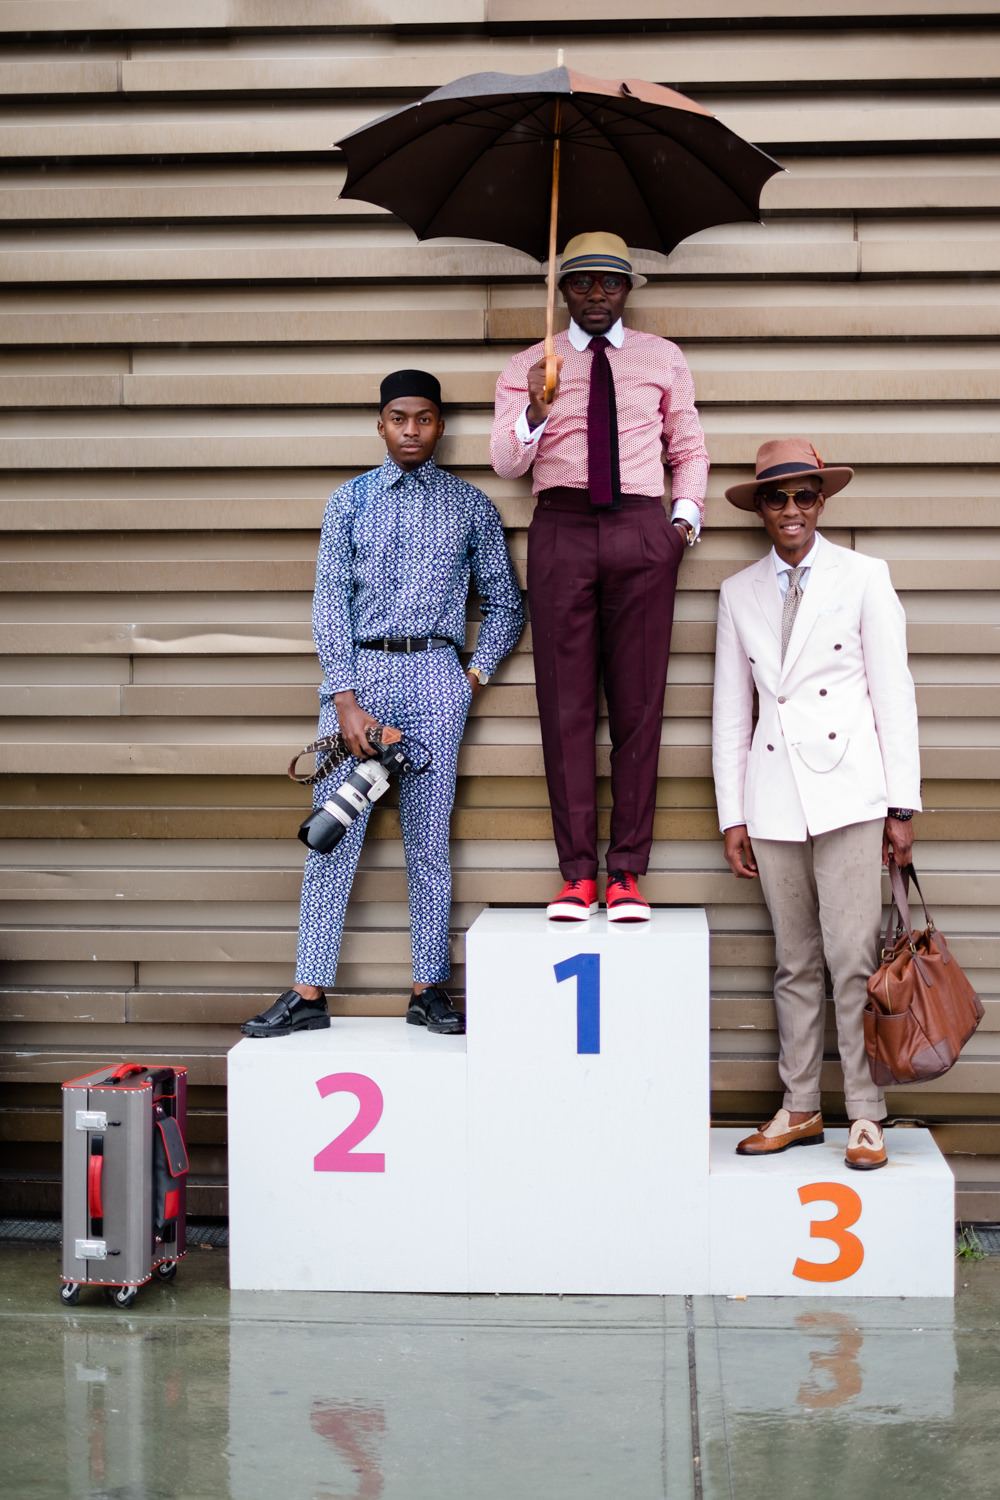 Pitti immagine uomo florence photographer fashion